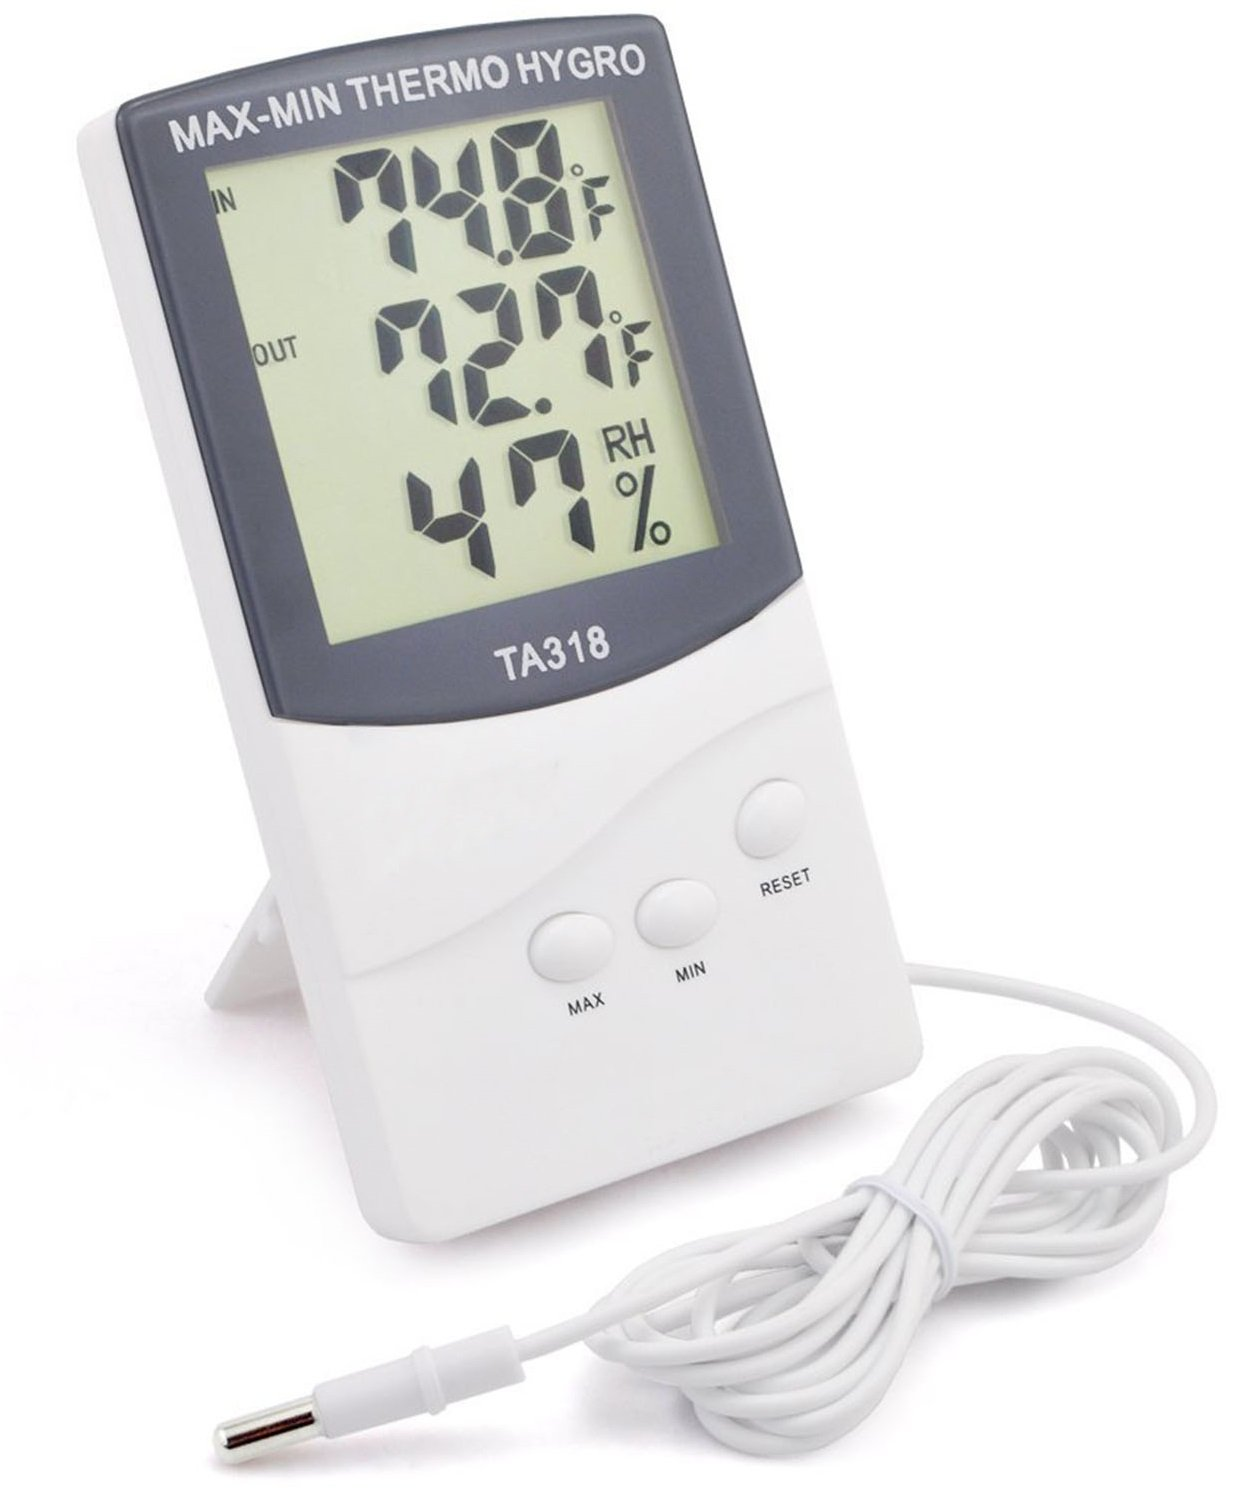 GPCT [2-In-1] Digital [Thermometer/Hygrometer] Temperature Gauge Meter. Indoor/Outdoor Humidity Monitor/LCD Display/Celsius/Fahrenheit. Records Min/Max Temperature! Great for Home/Living Room/Office